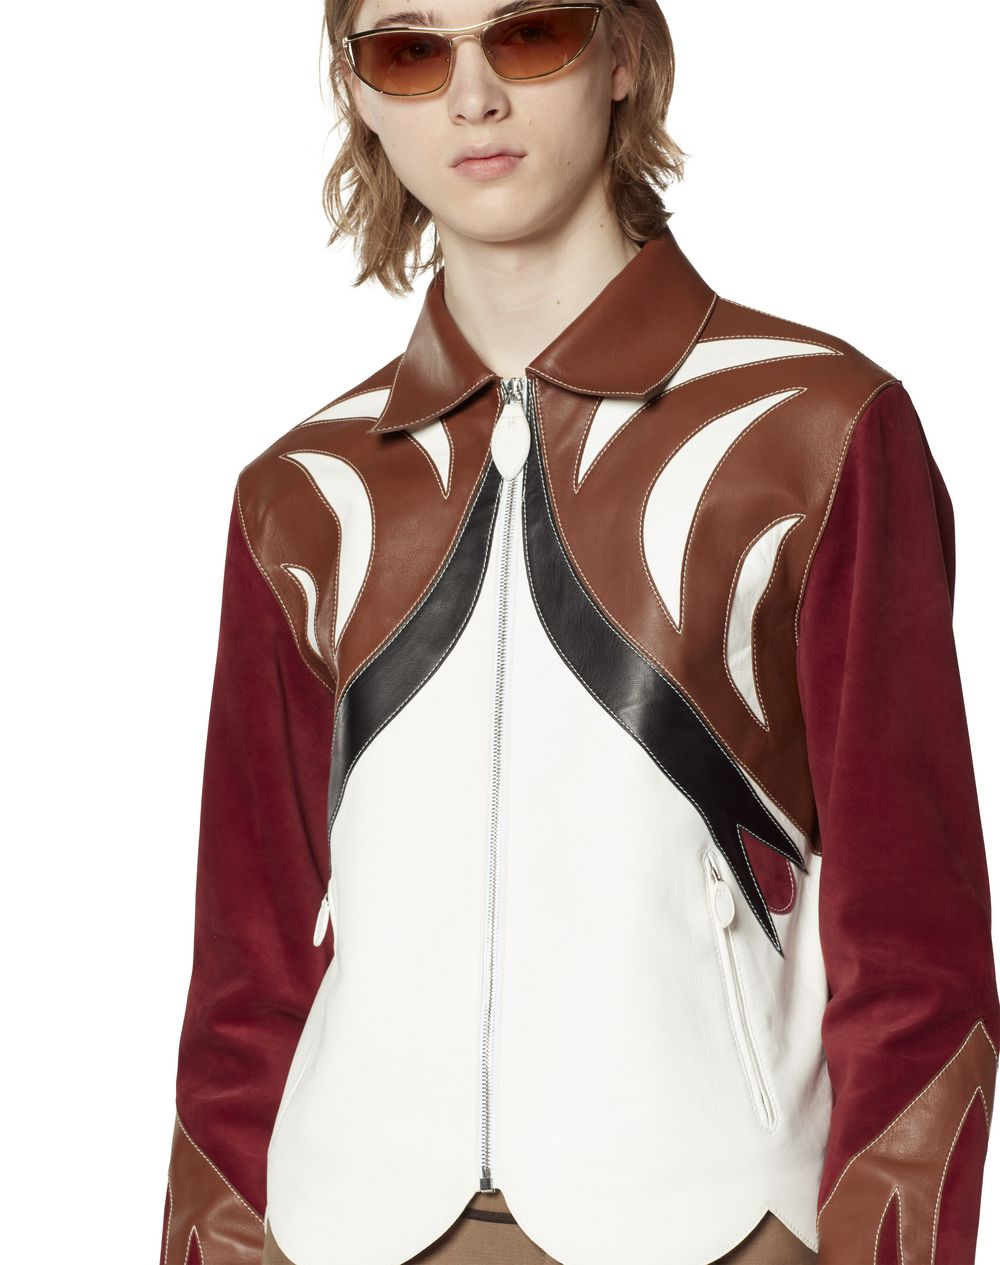 PARROT LEATHER JACKET - Lanvin